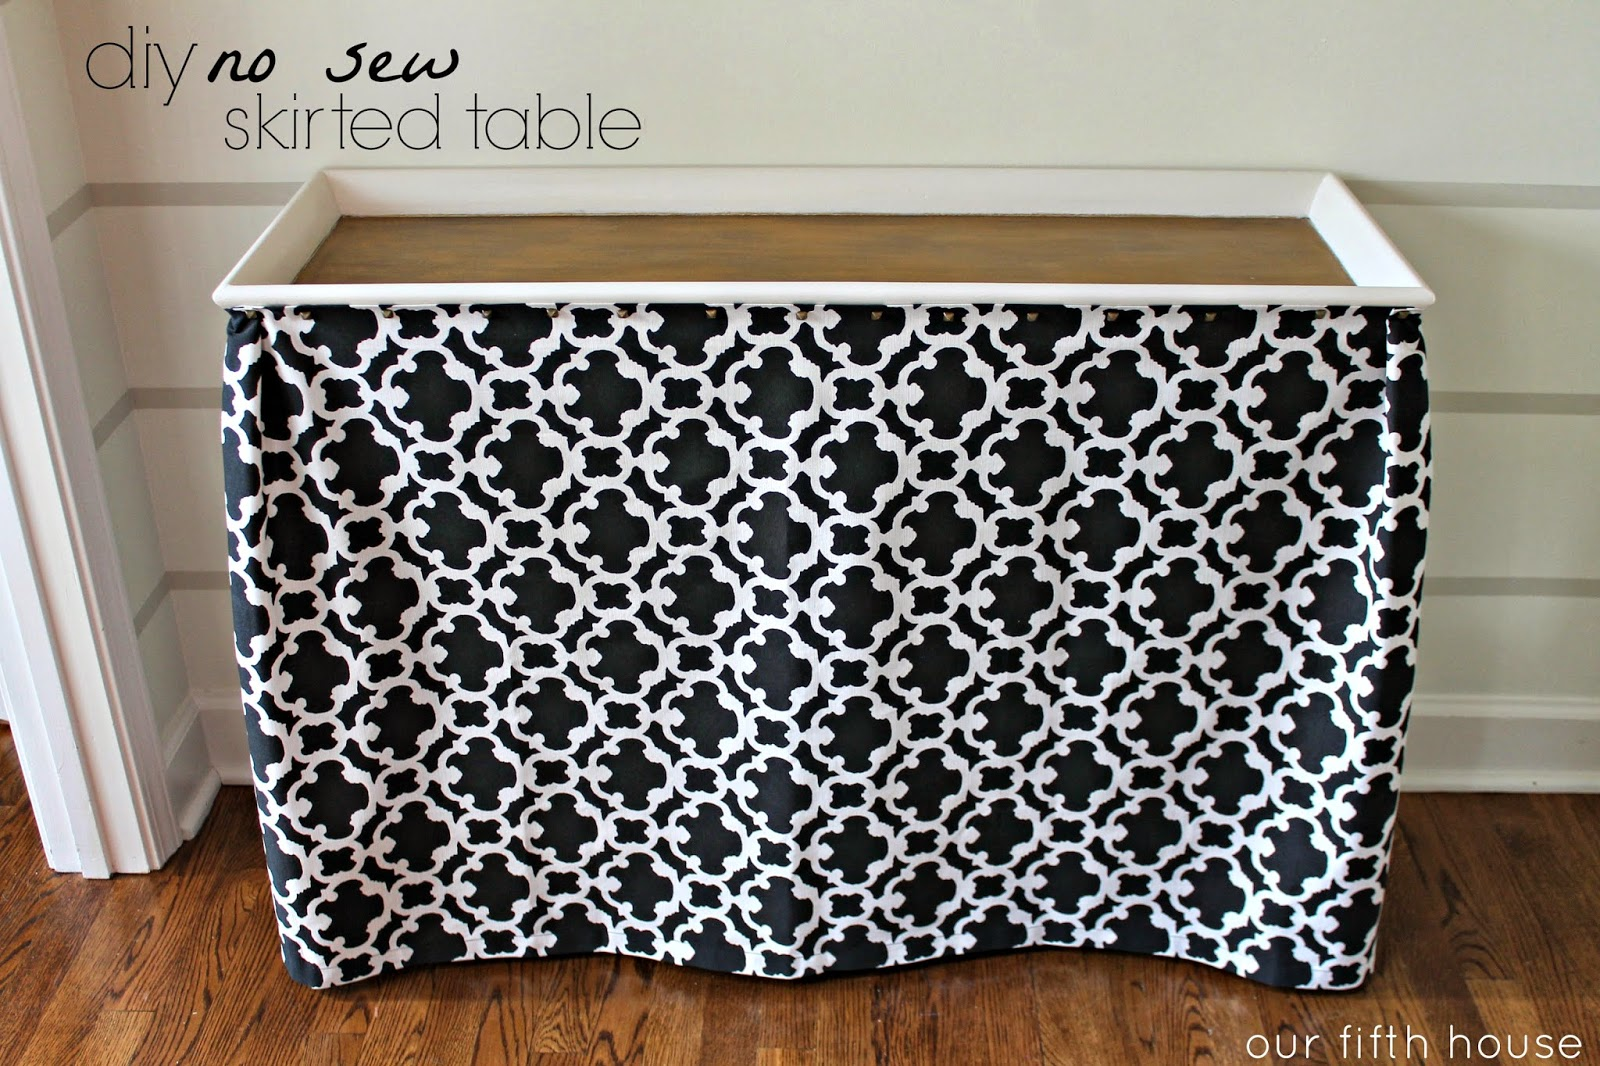 How to make a fabric table cover - How To Make A Fabric Table Cover 12